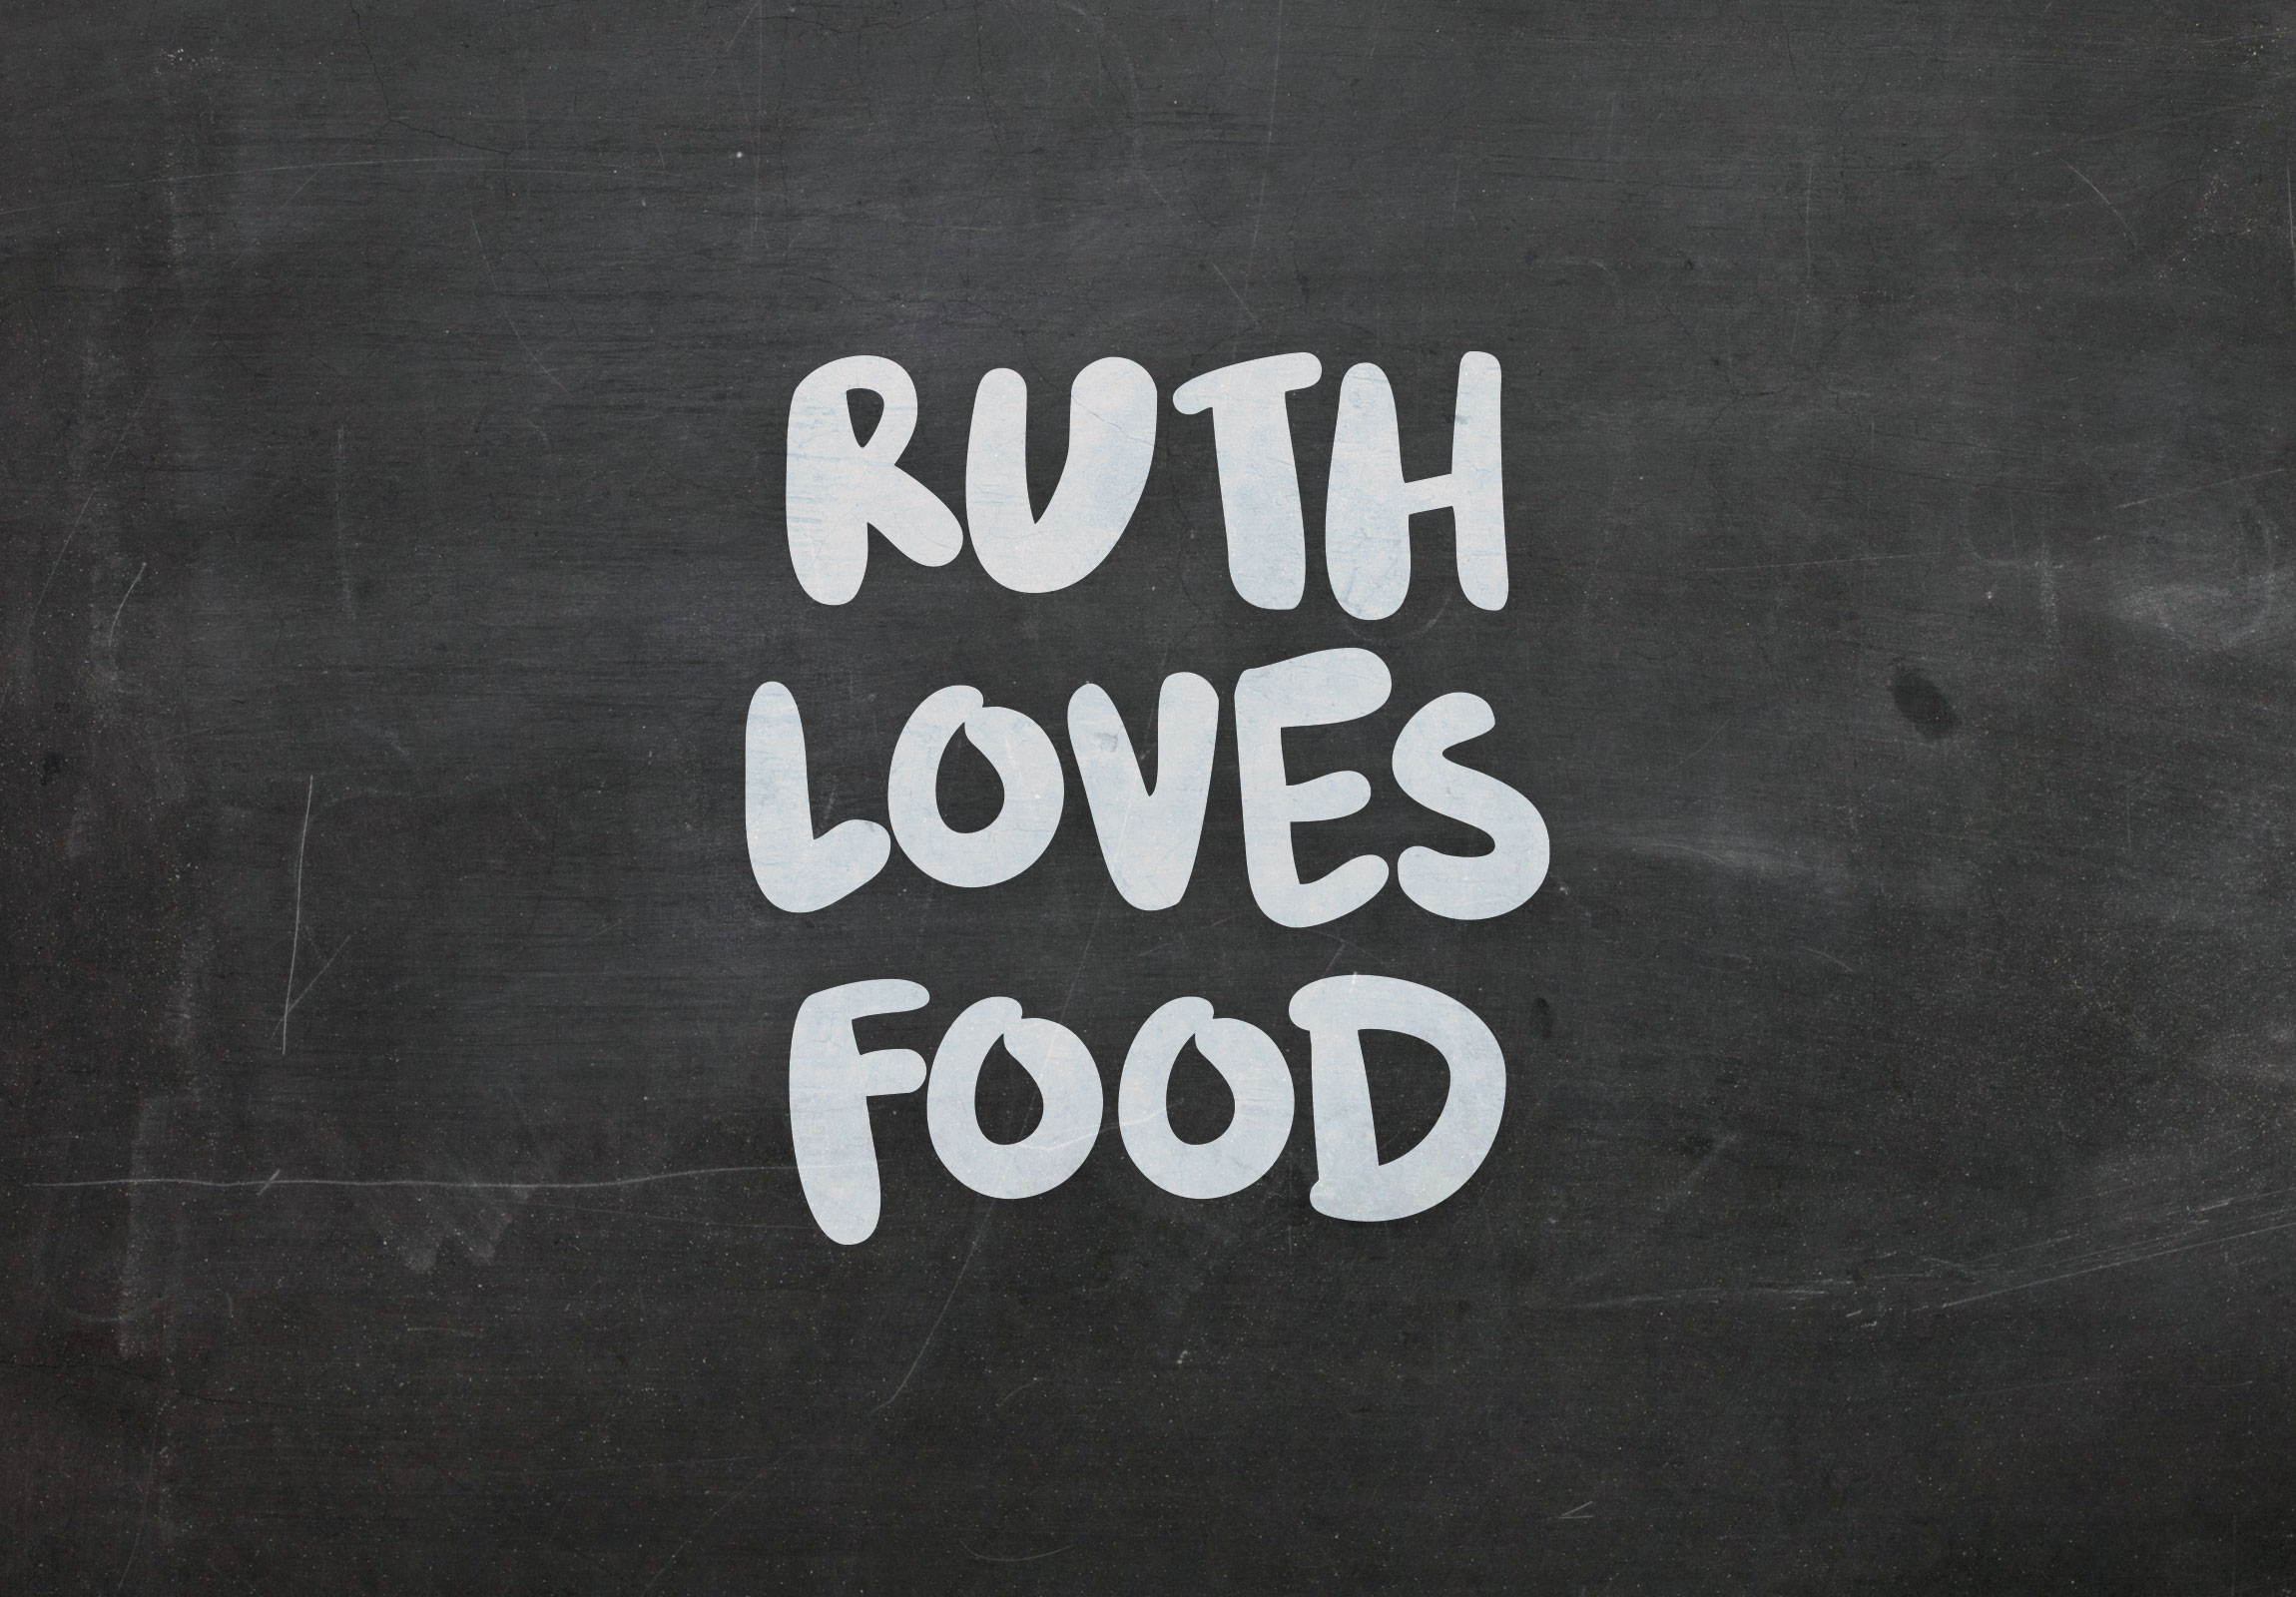 Visuell identitet » Ruthlovesfood